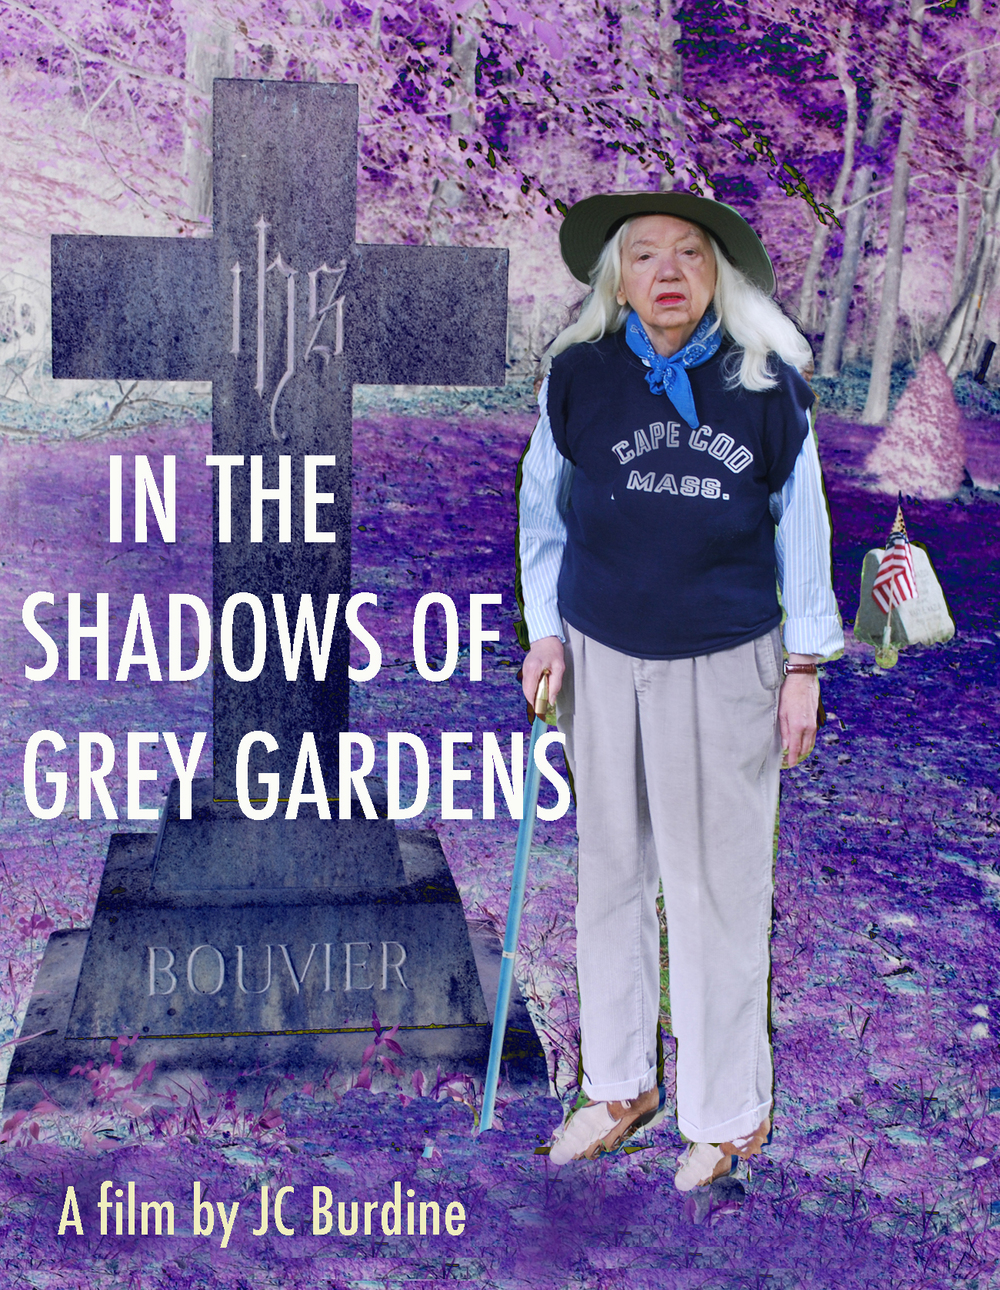 In the Shadows of Grey Gardens, a film by JC Burdine